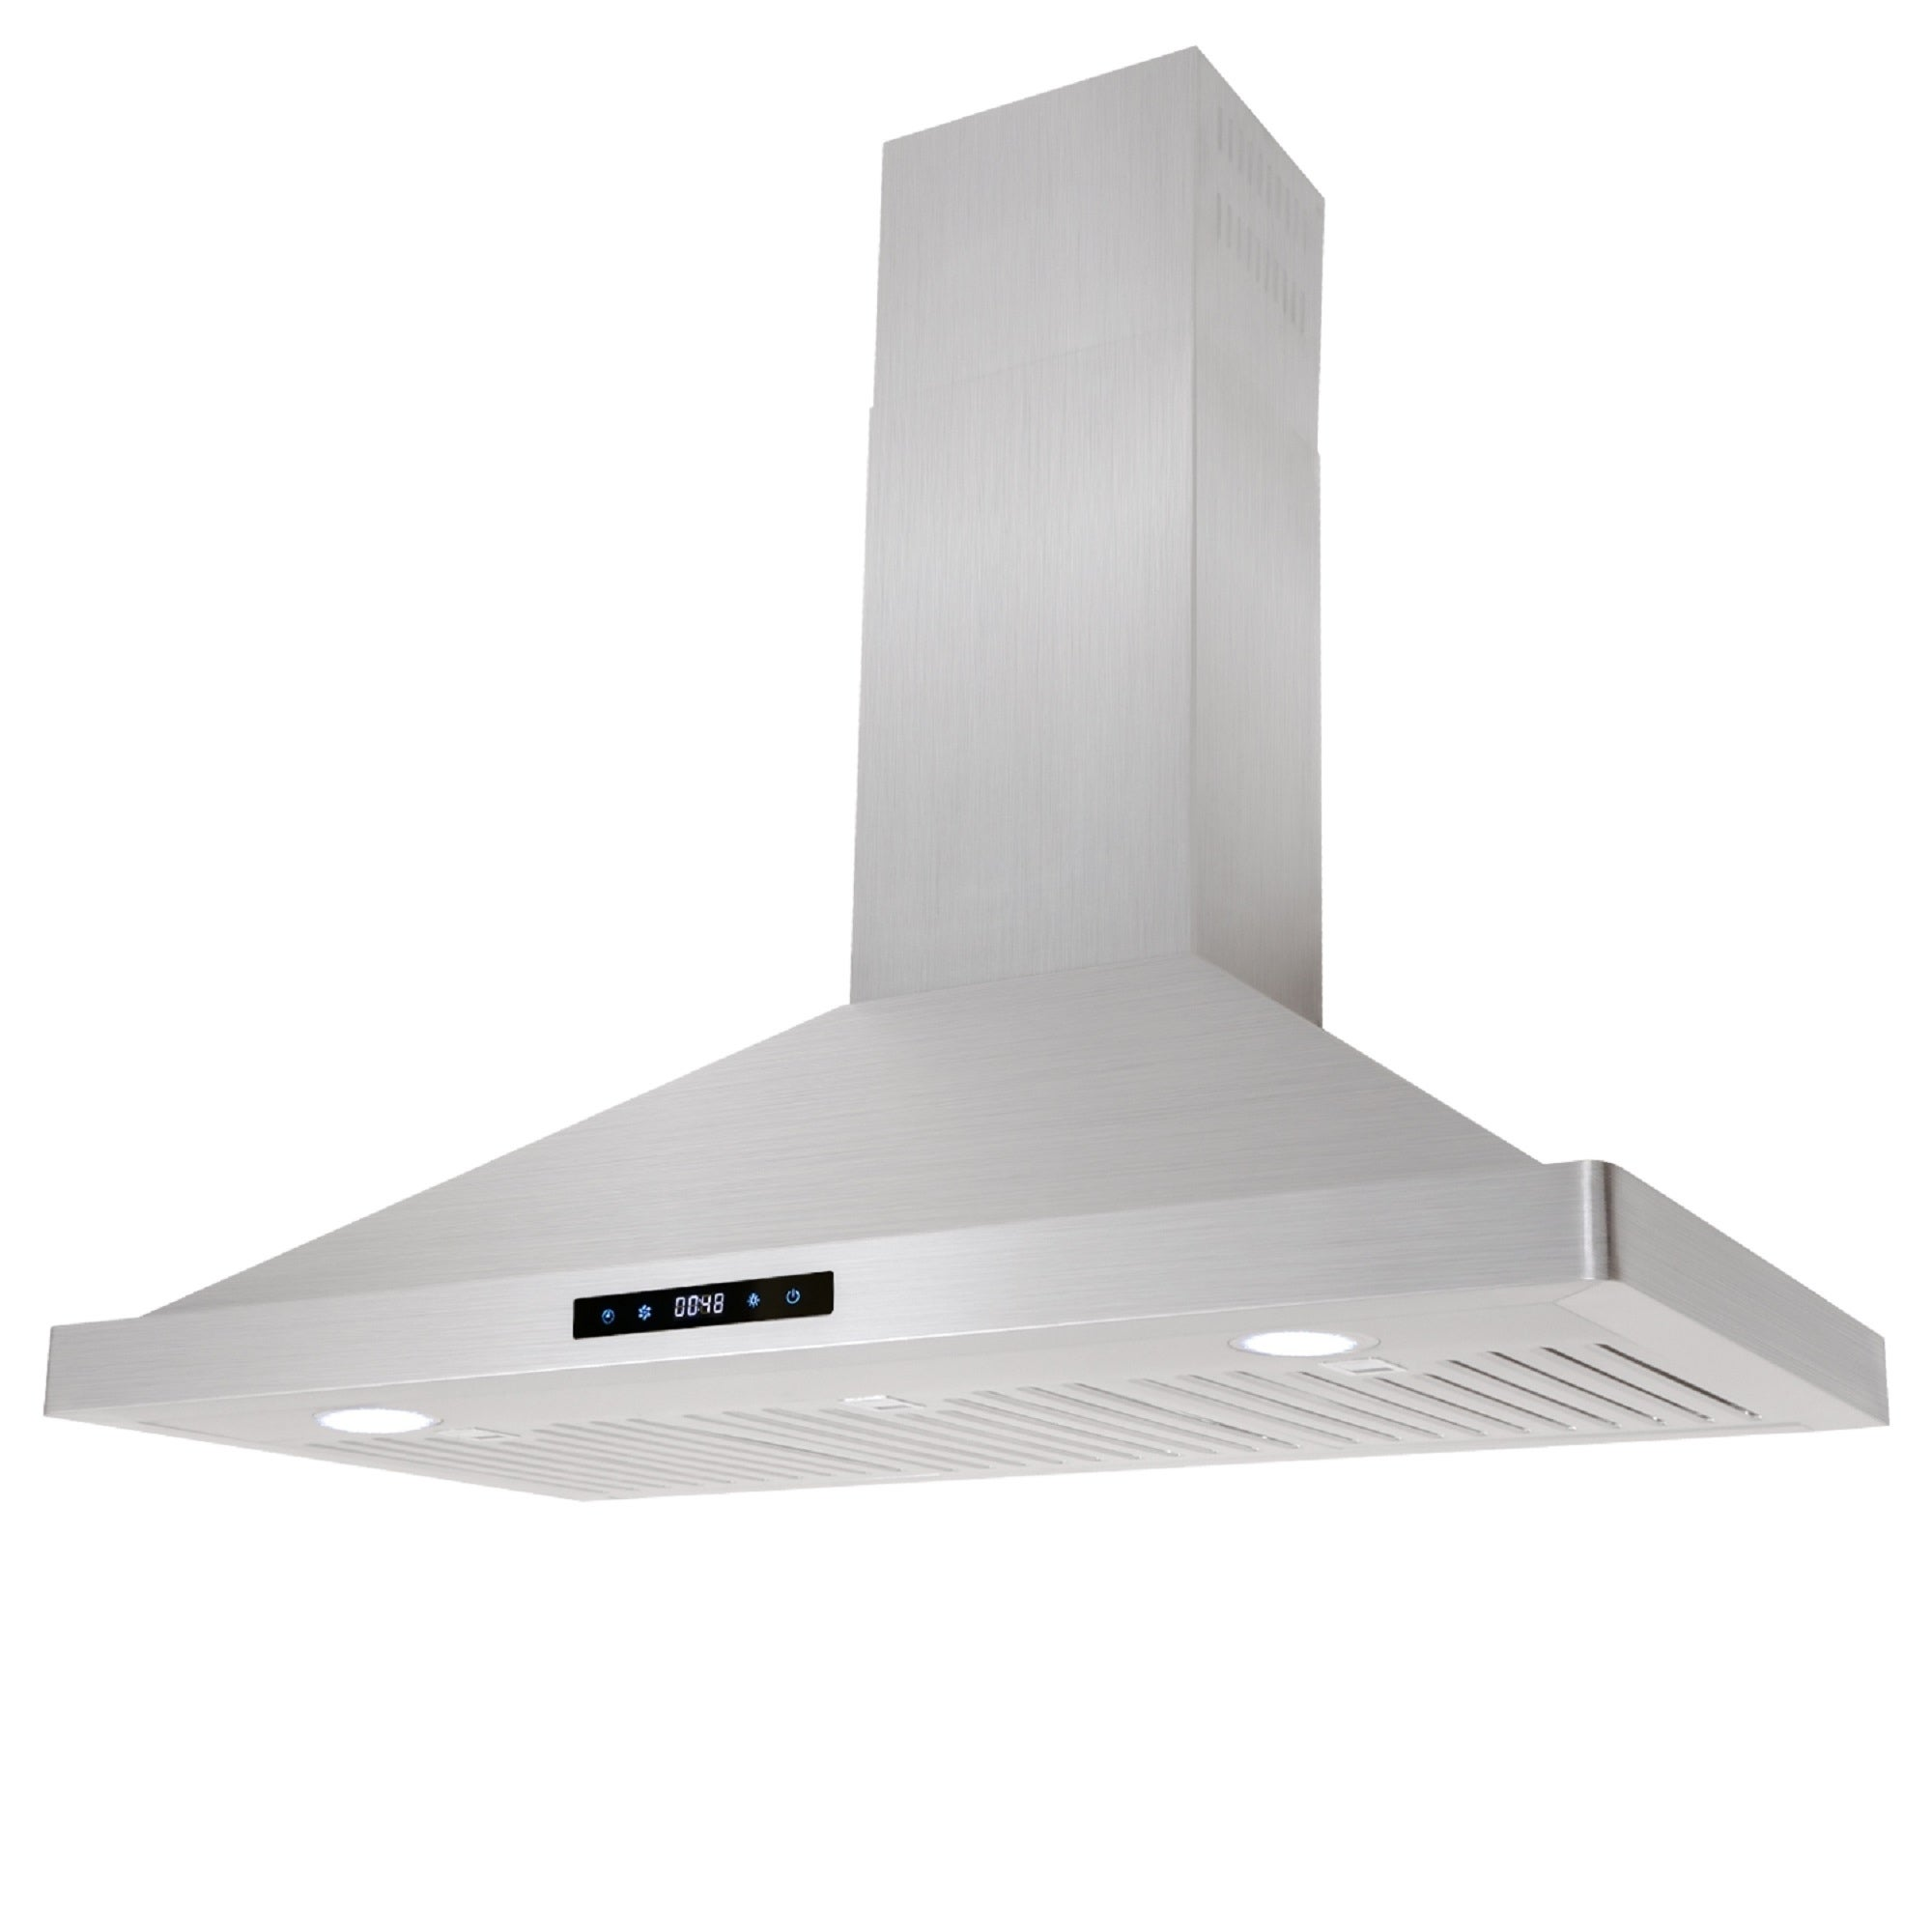 Cosmo 631s Series Range Hood 760 Cfm Ducted Wall Mount In Stainless Steel Ships To Canada 11832594